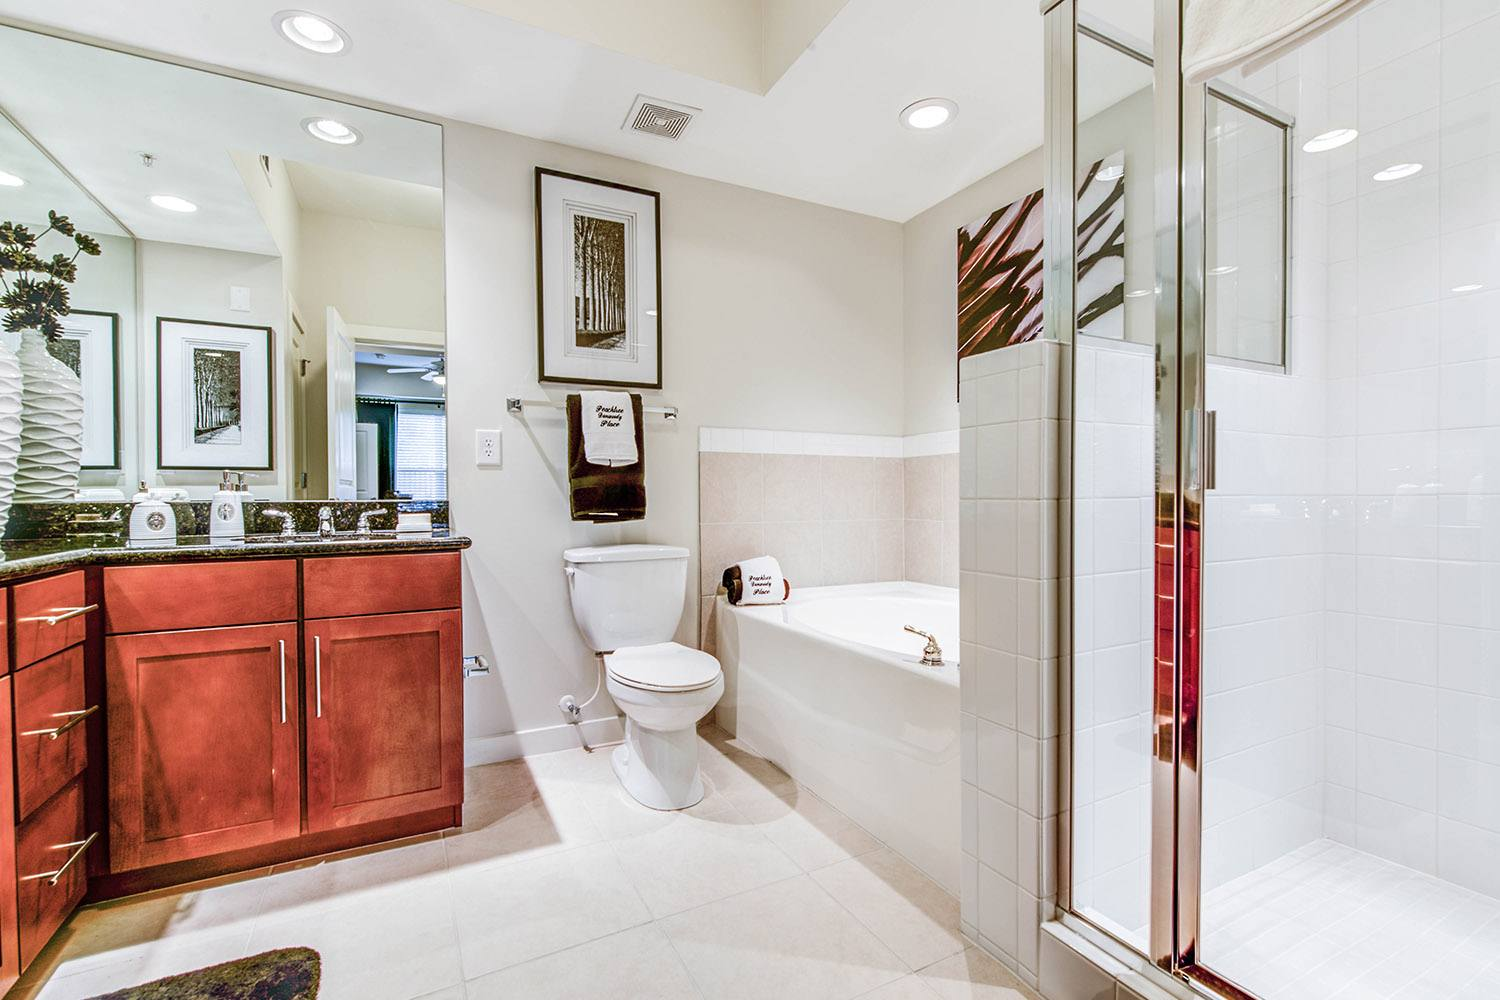 Bathroom at  Peachtree Dunwoody Place